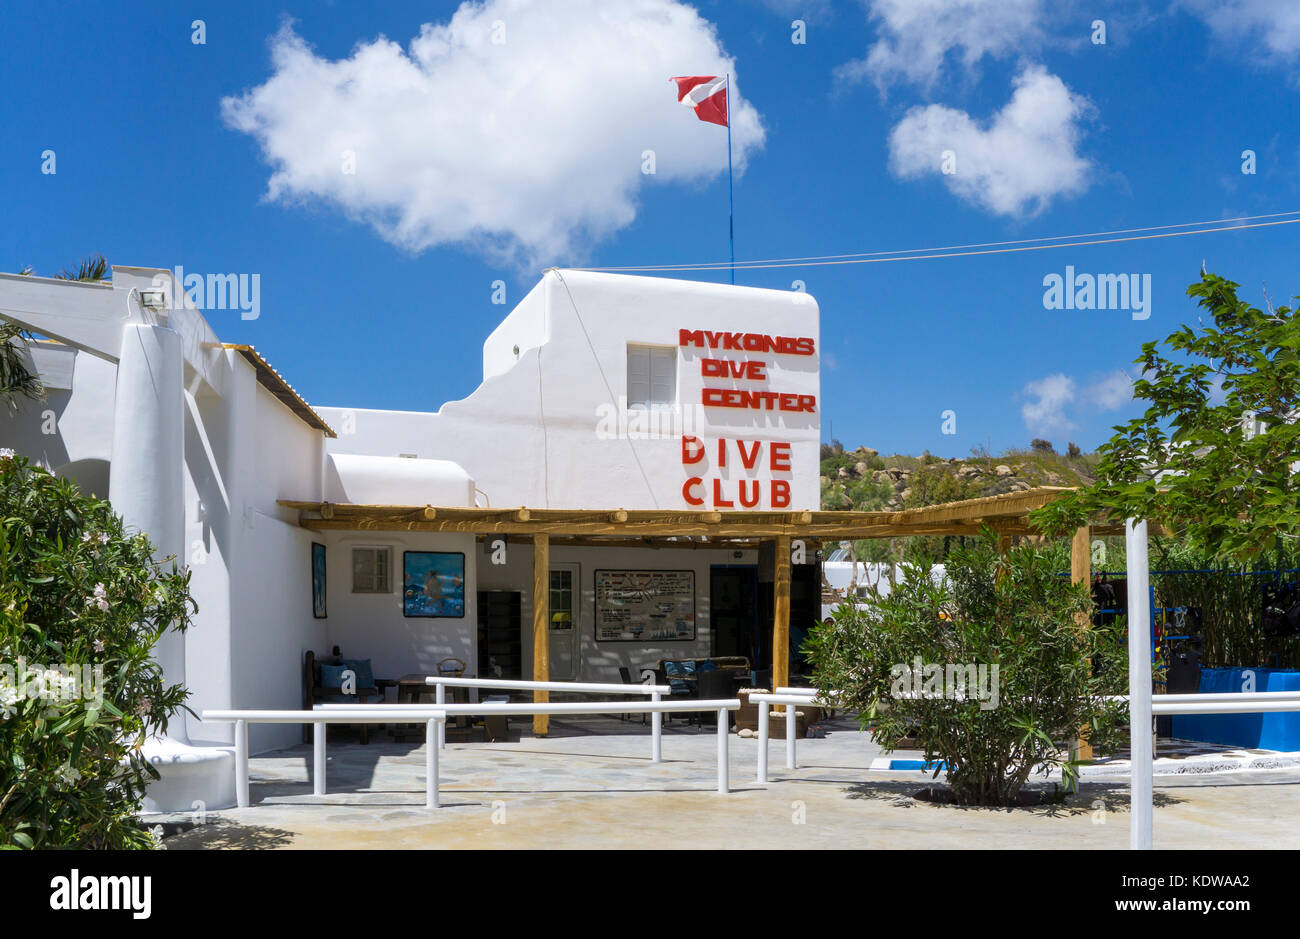 Mykonos dive center, Tauchschule am Paradise beach, Mykonos - Stock Image